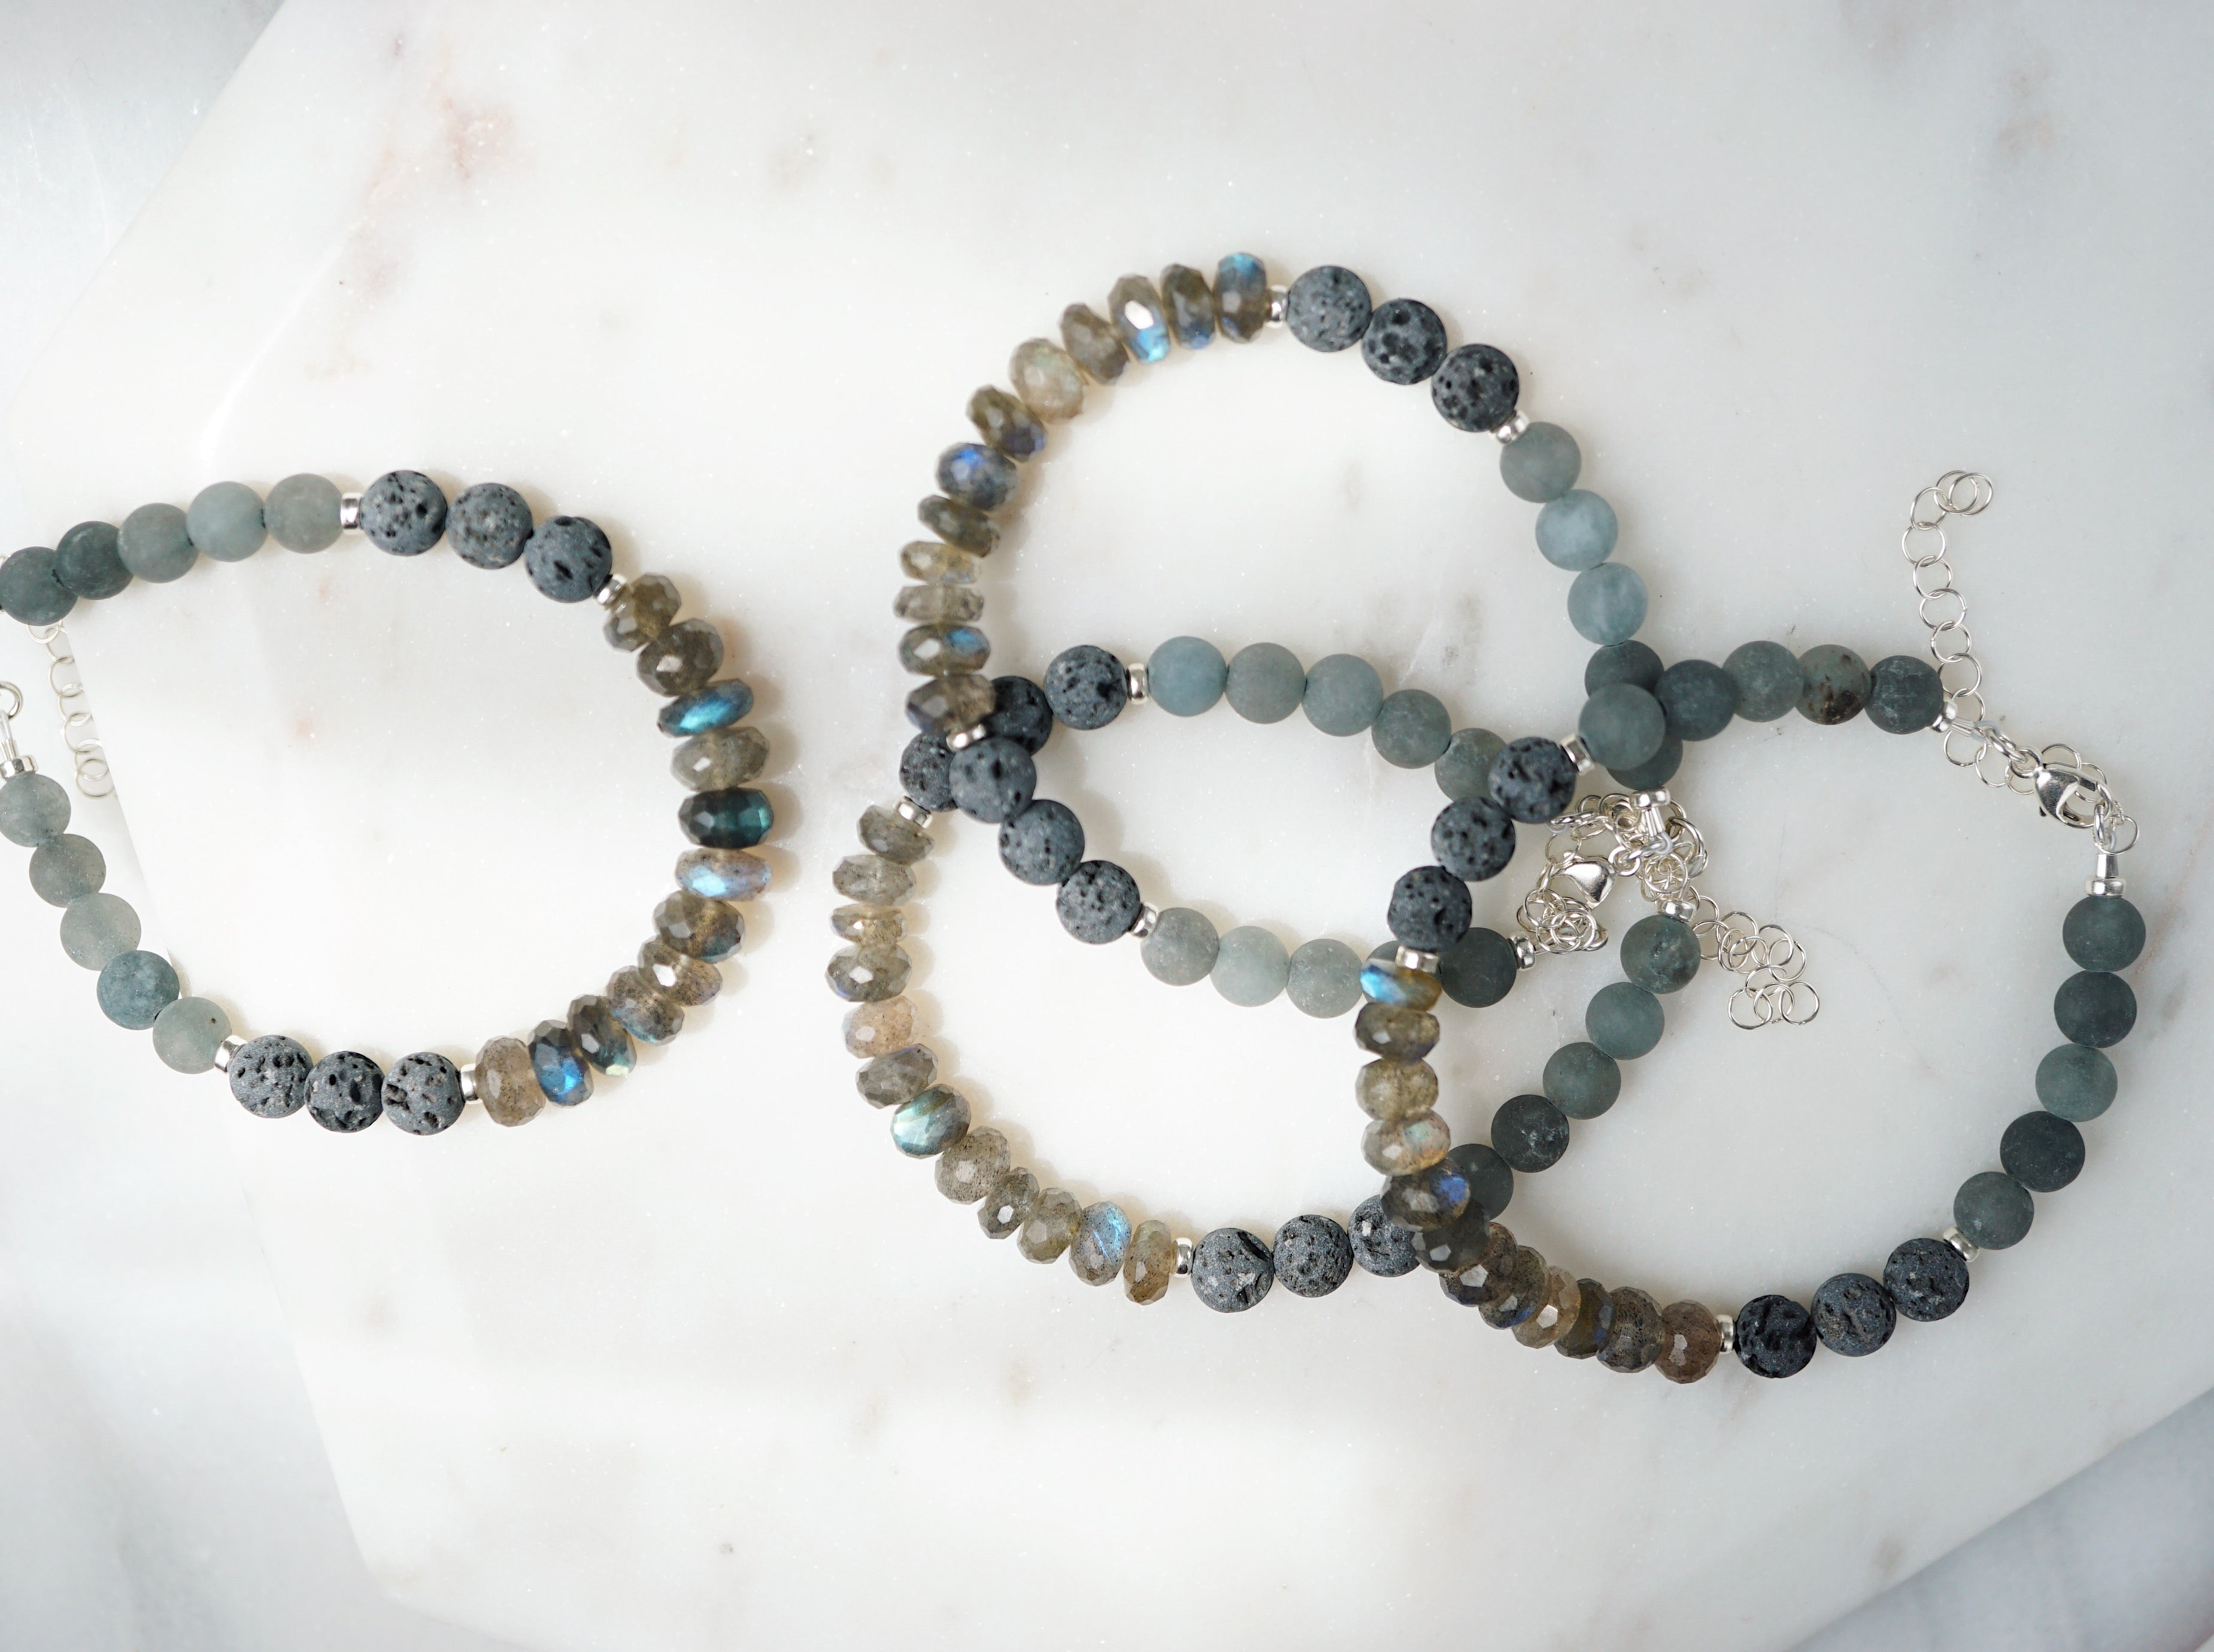 Faceted Labradorite, Jade, Lava Sterling Silver Aromatherapy Bracelet